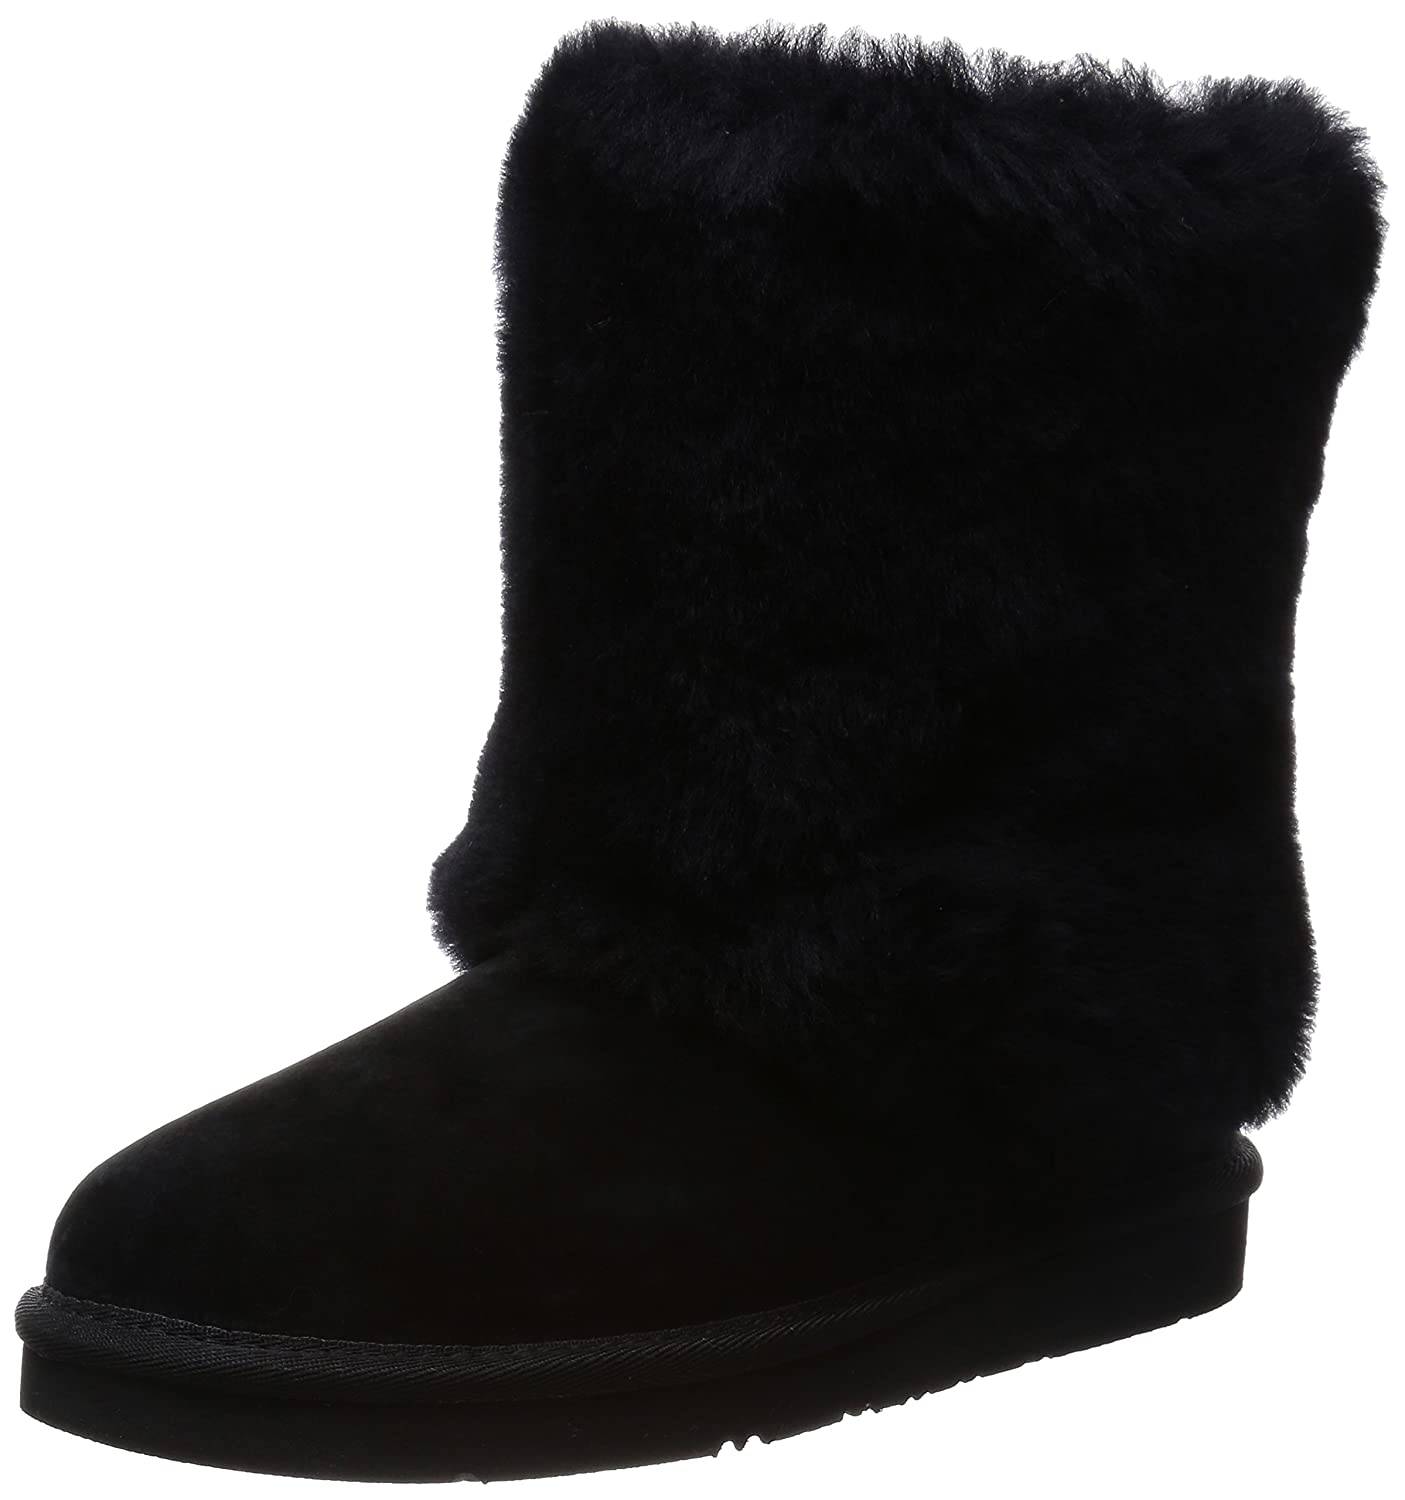 187cd97b23c UGG Australia Womens Patten Black Winter Boot - 5: Amazon.ca: Shoes ...